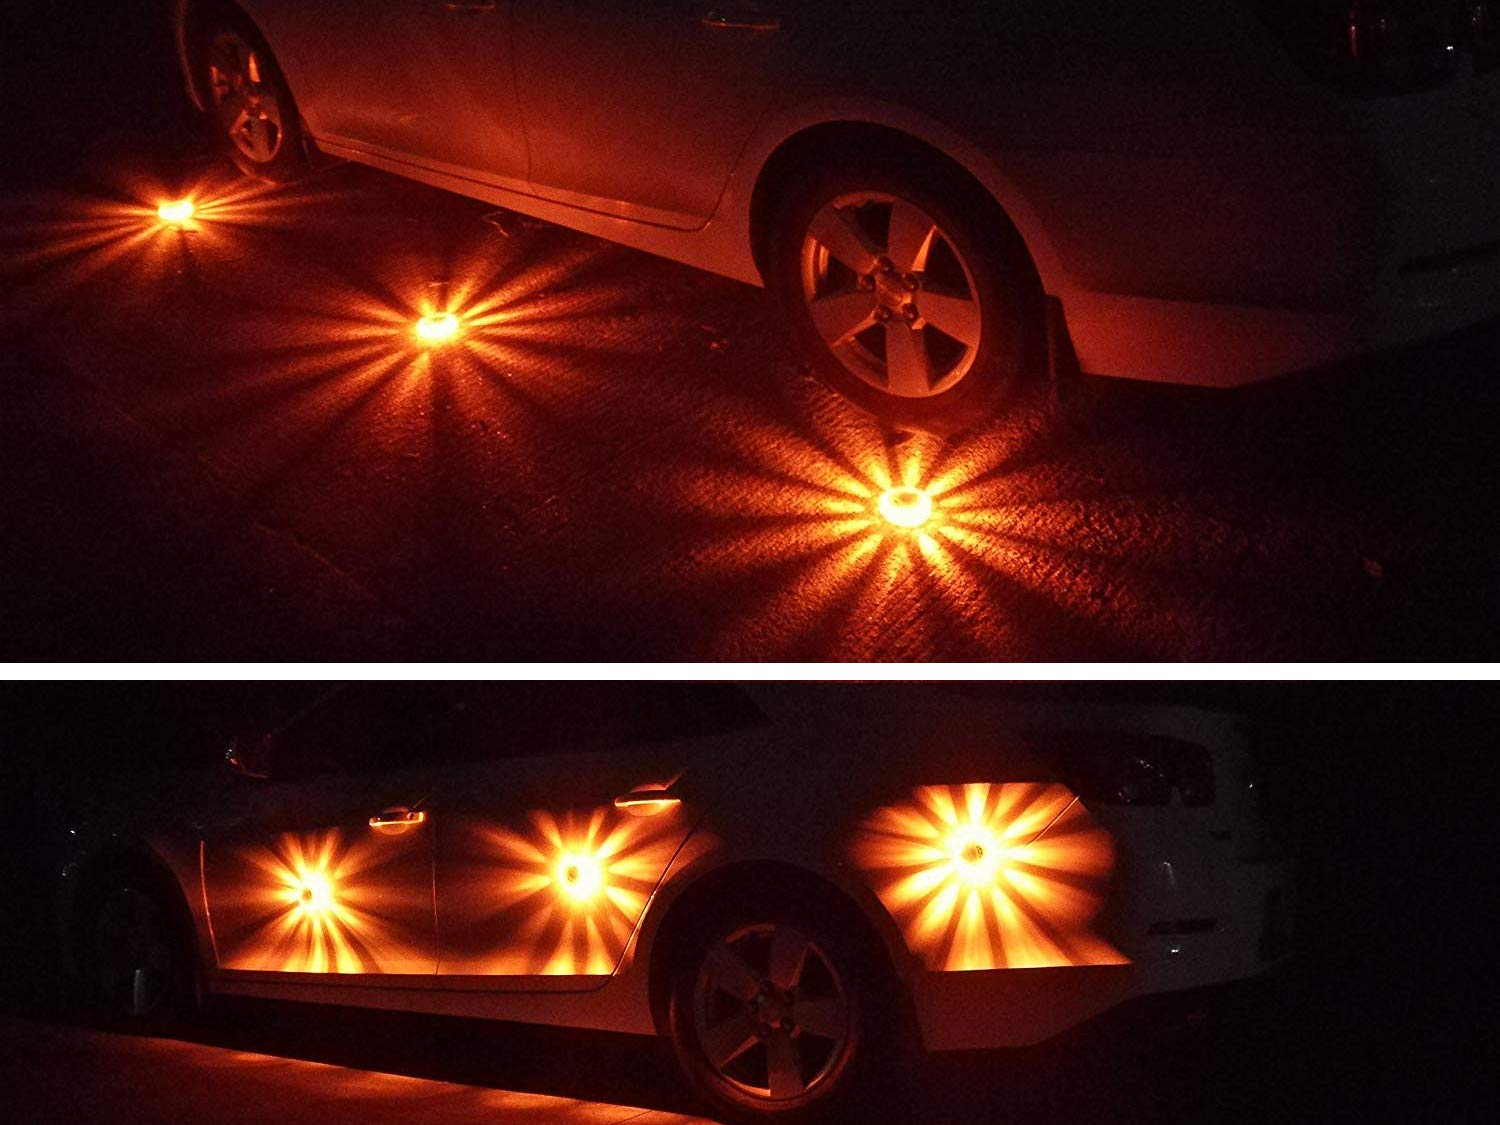 Tobfit 3 Pack LED Road Flares Emergency Lights Roadside Safety Beacon Disc Flashing Warning Flare Kit with Magnetic Base & Hook for Car Truck Boats | 9 Flash Modes (Batteries Not Included) (3) by Tobfit (Image #7)